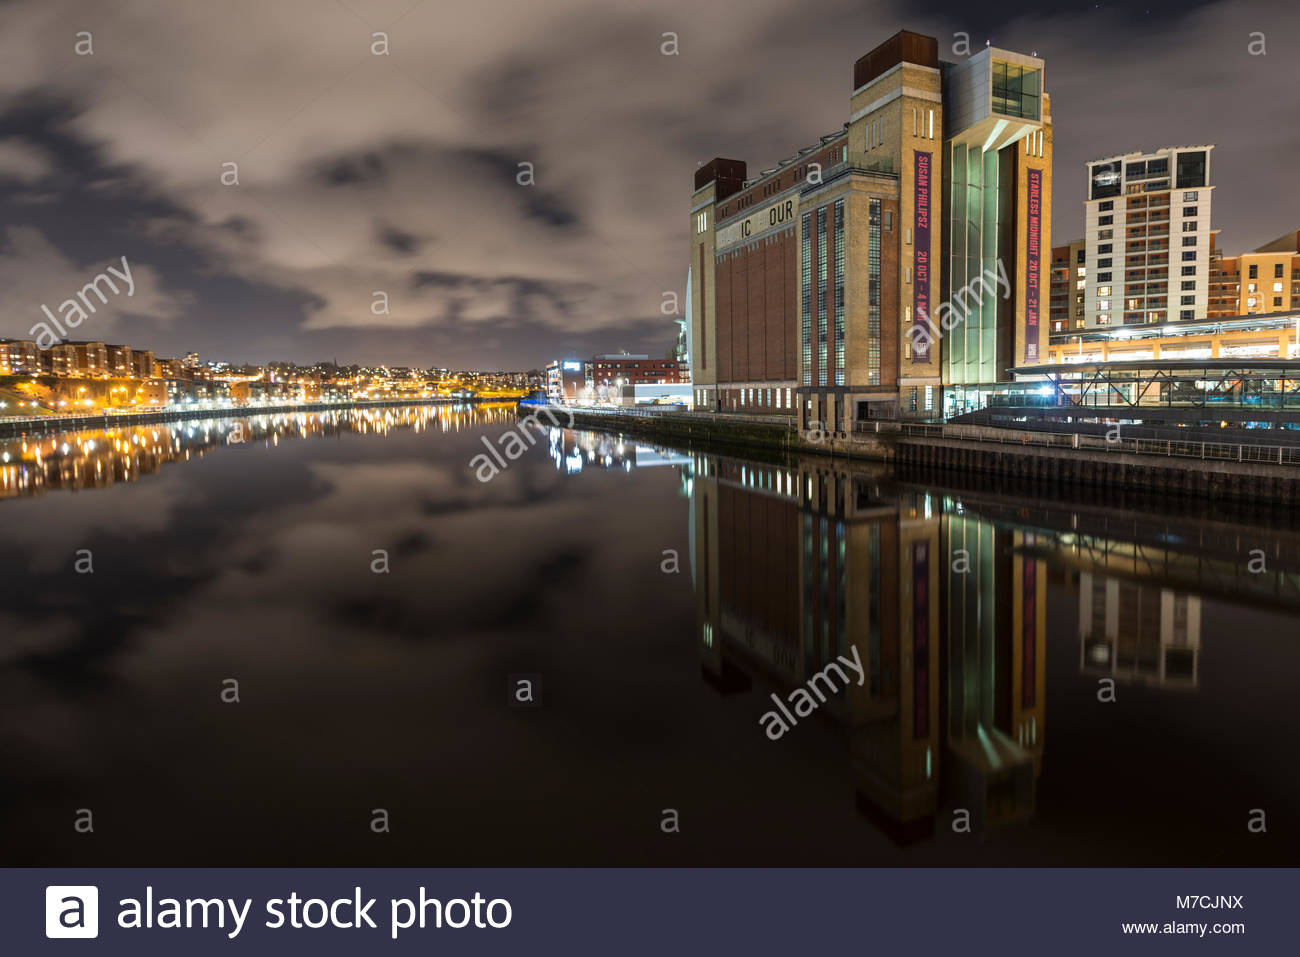 The Baltic Arts Centre, newcastle quayside and cloudy sky reflecting in The River tyne at night Stock Photo